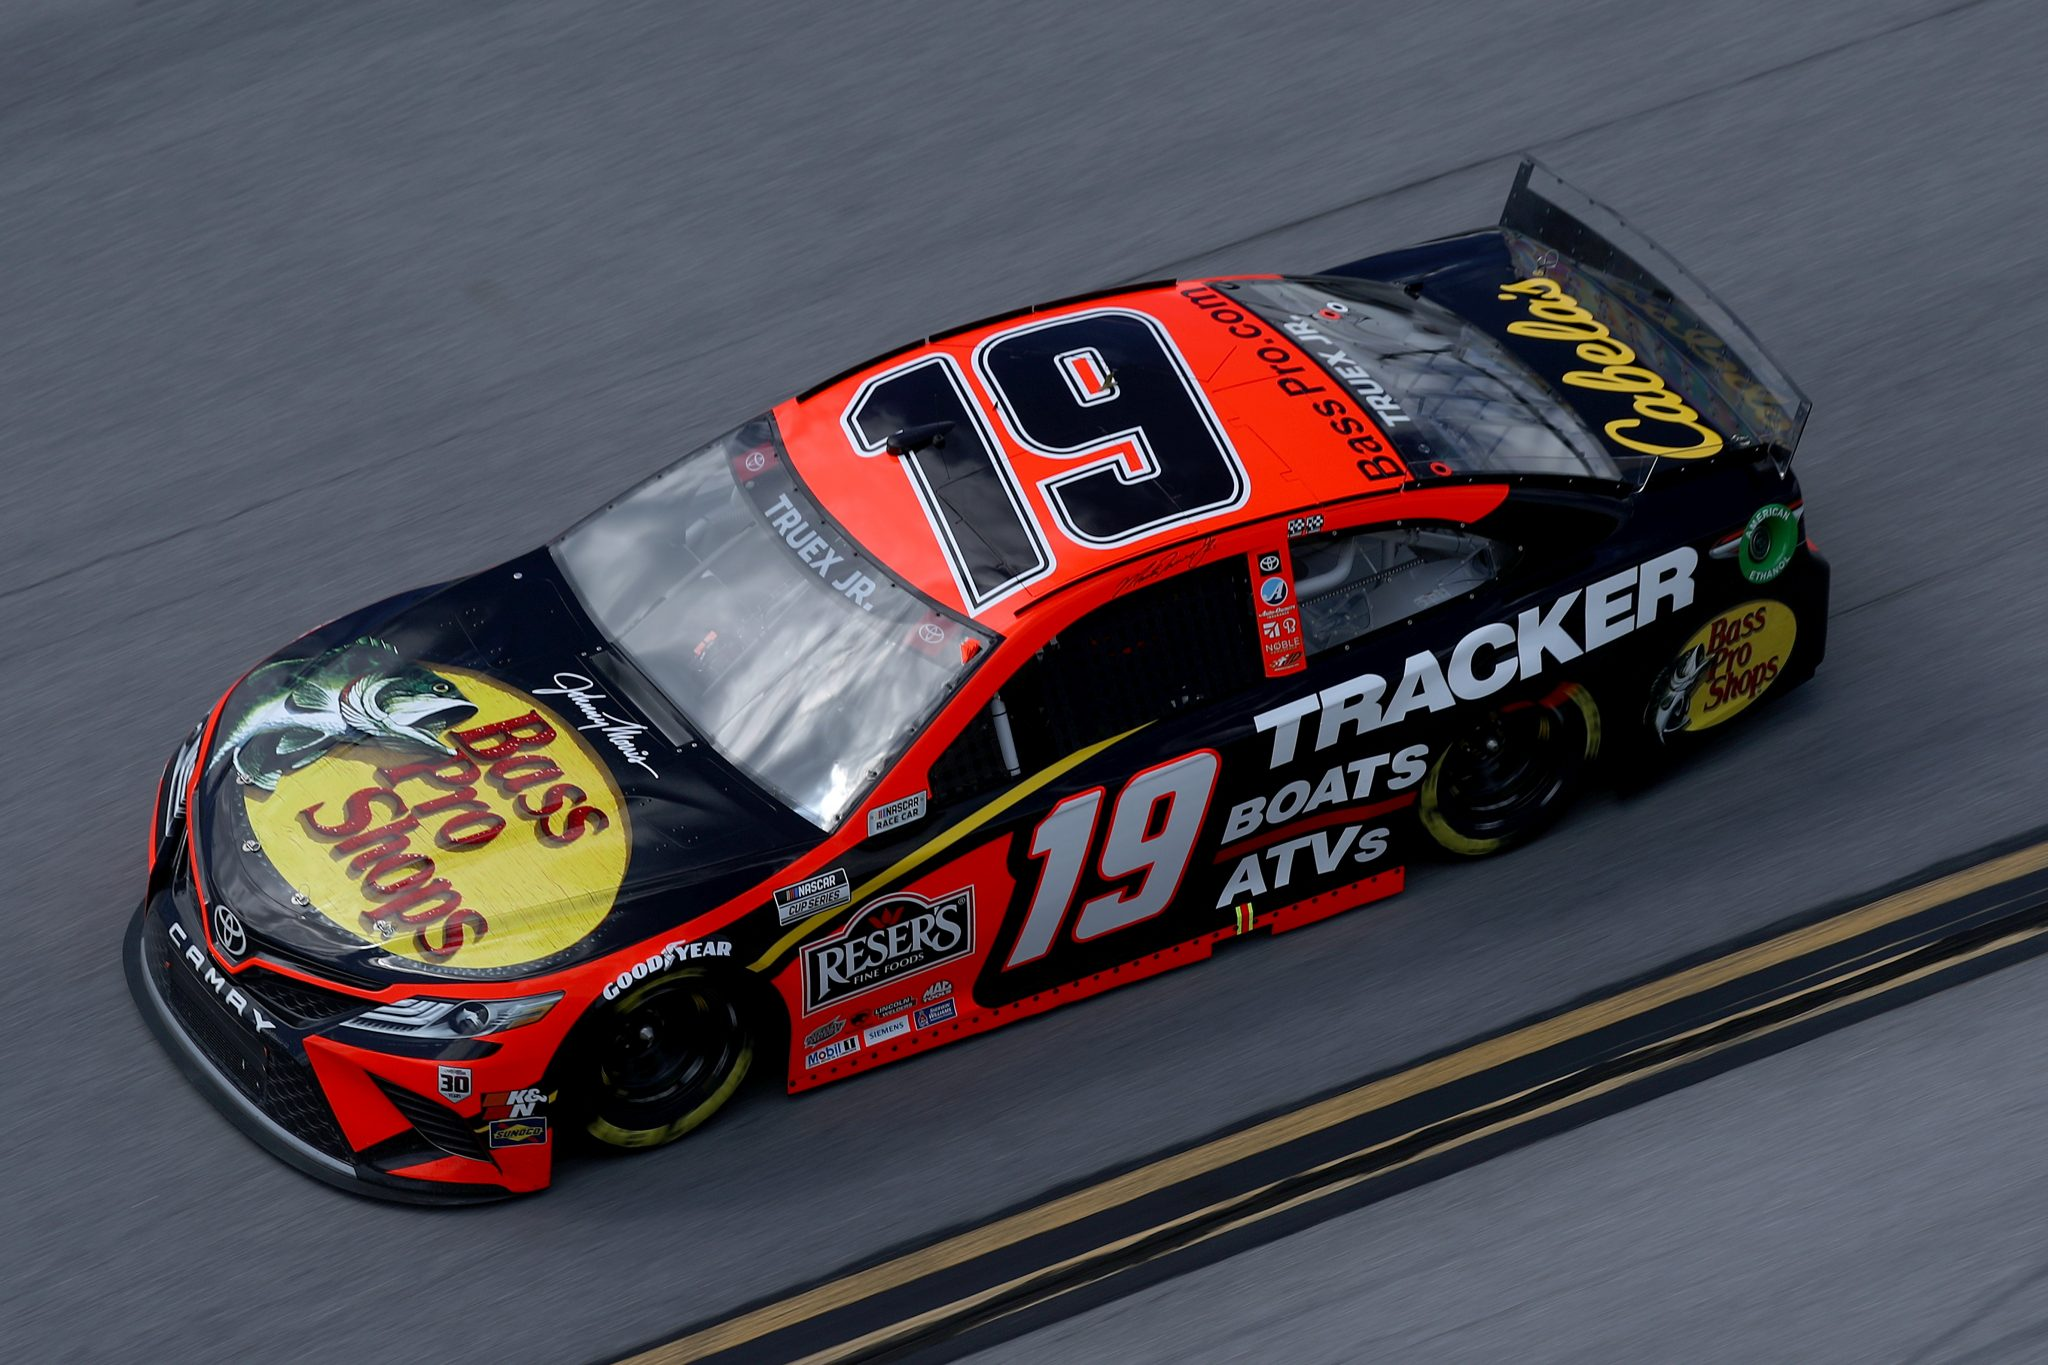 TALLADEGA, ALABAMA - APRIL 25: Martin Truex Jr., driver of the #19 Bass Pro Toyota, drives during the NASCAR Cup Series GEICO 500 at Talladega Superspeedway on April 25, 2021 in Talladega, Alabama. (Photo by Sean Gardner/Getty Images) | Getty Images